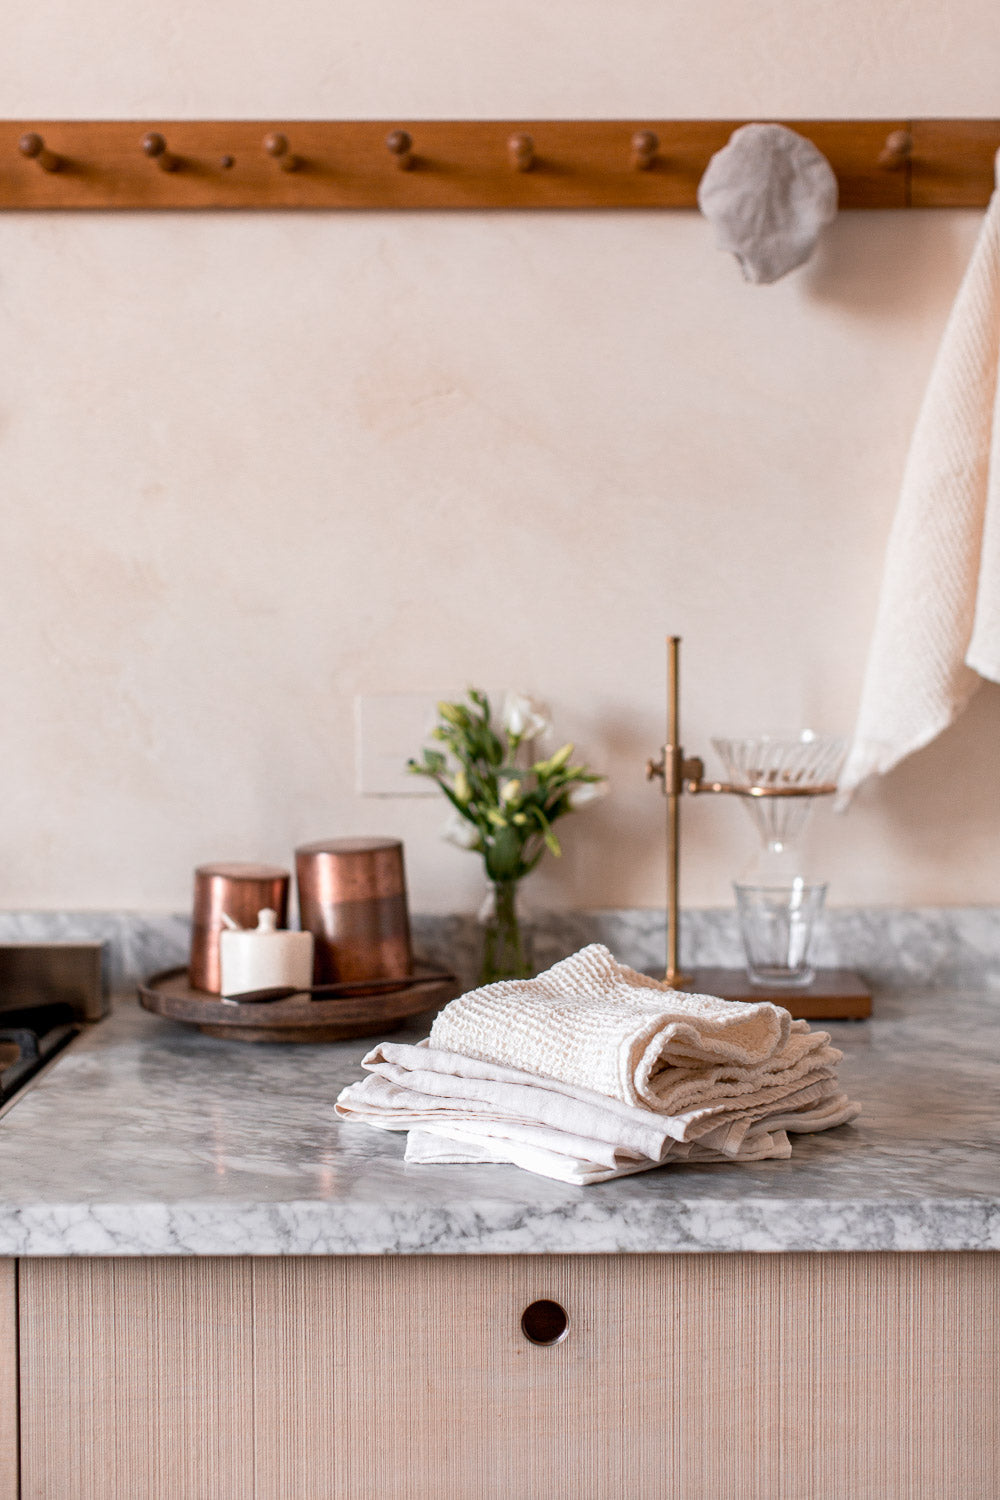 organic cotton and linen kitchen towel